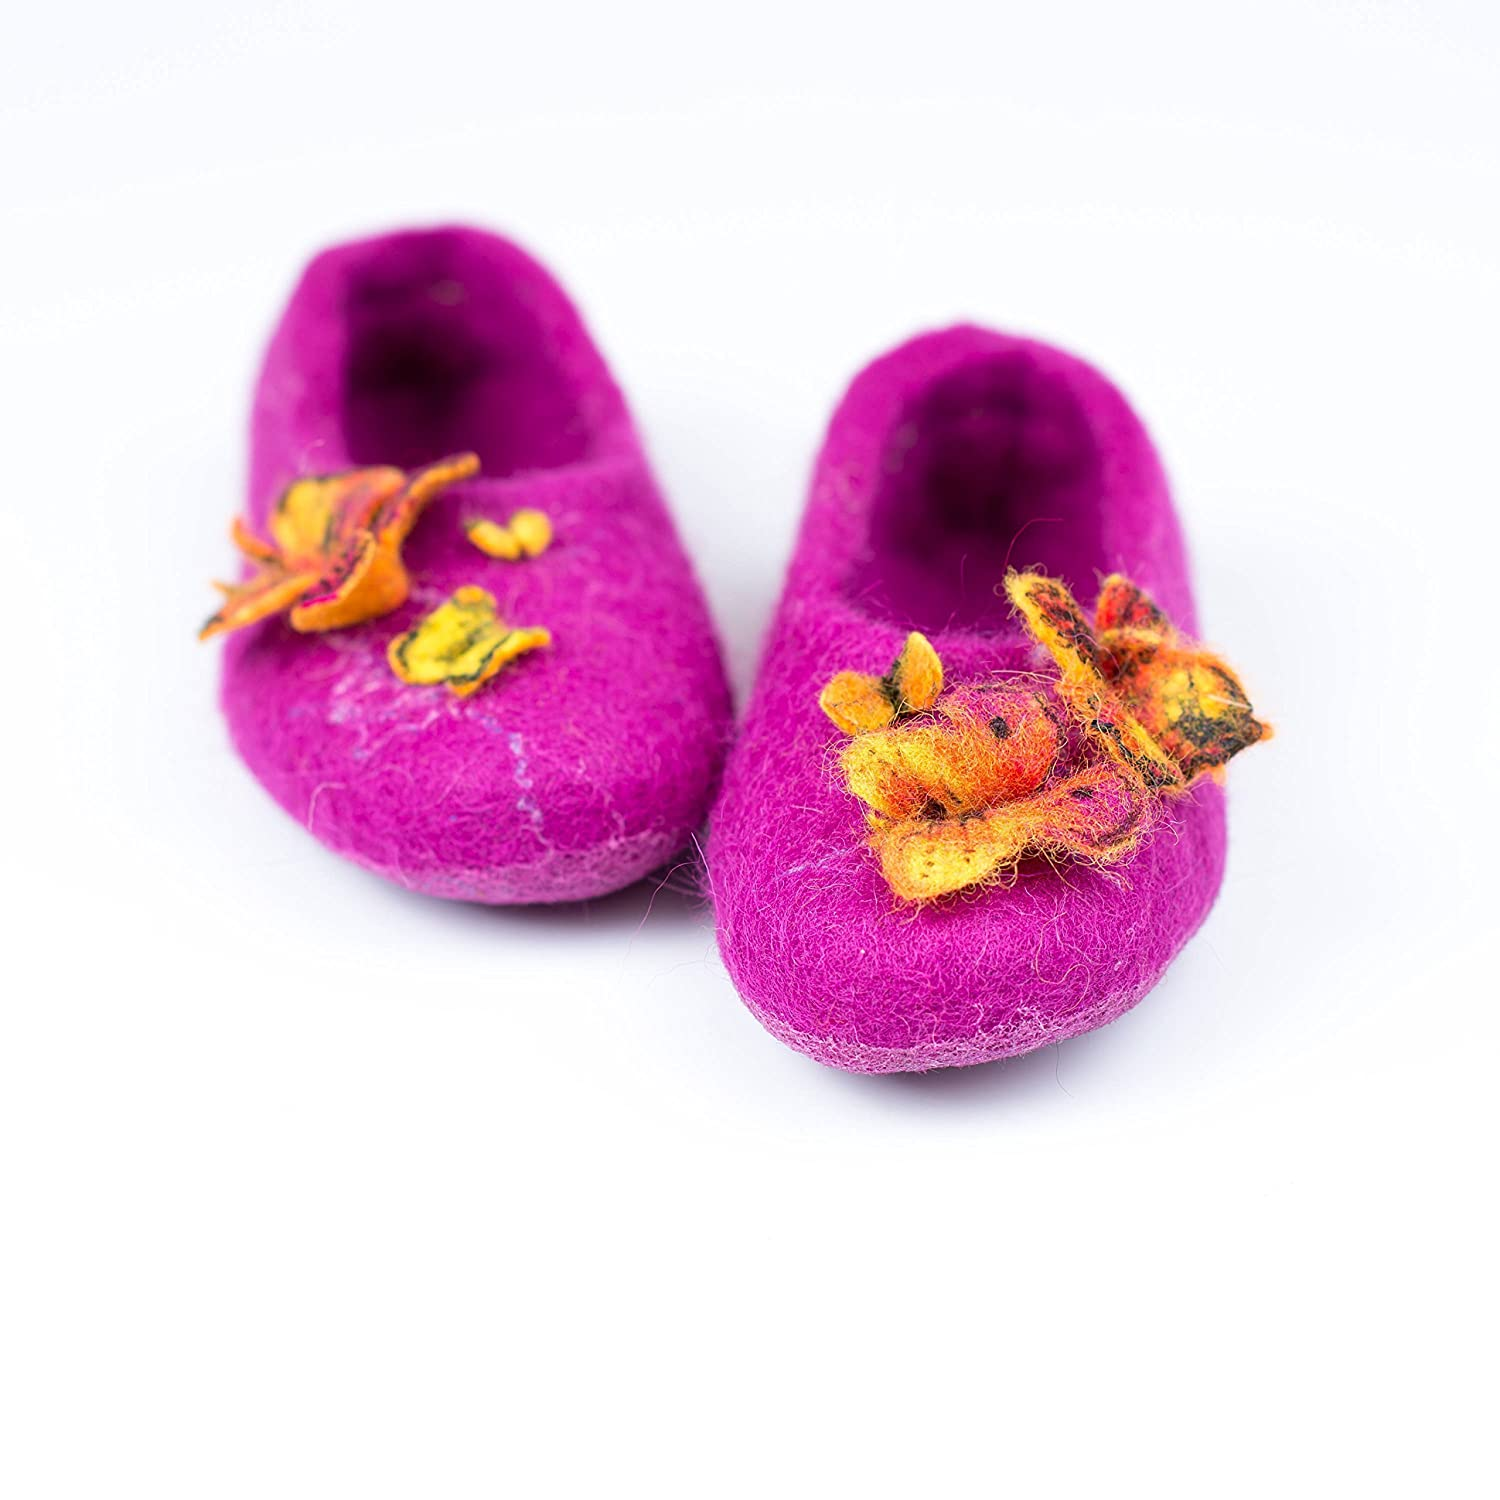 Little Princess woolen slippers with butterflies for toddler girls, Handmade felted wool slippers